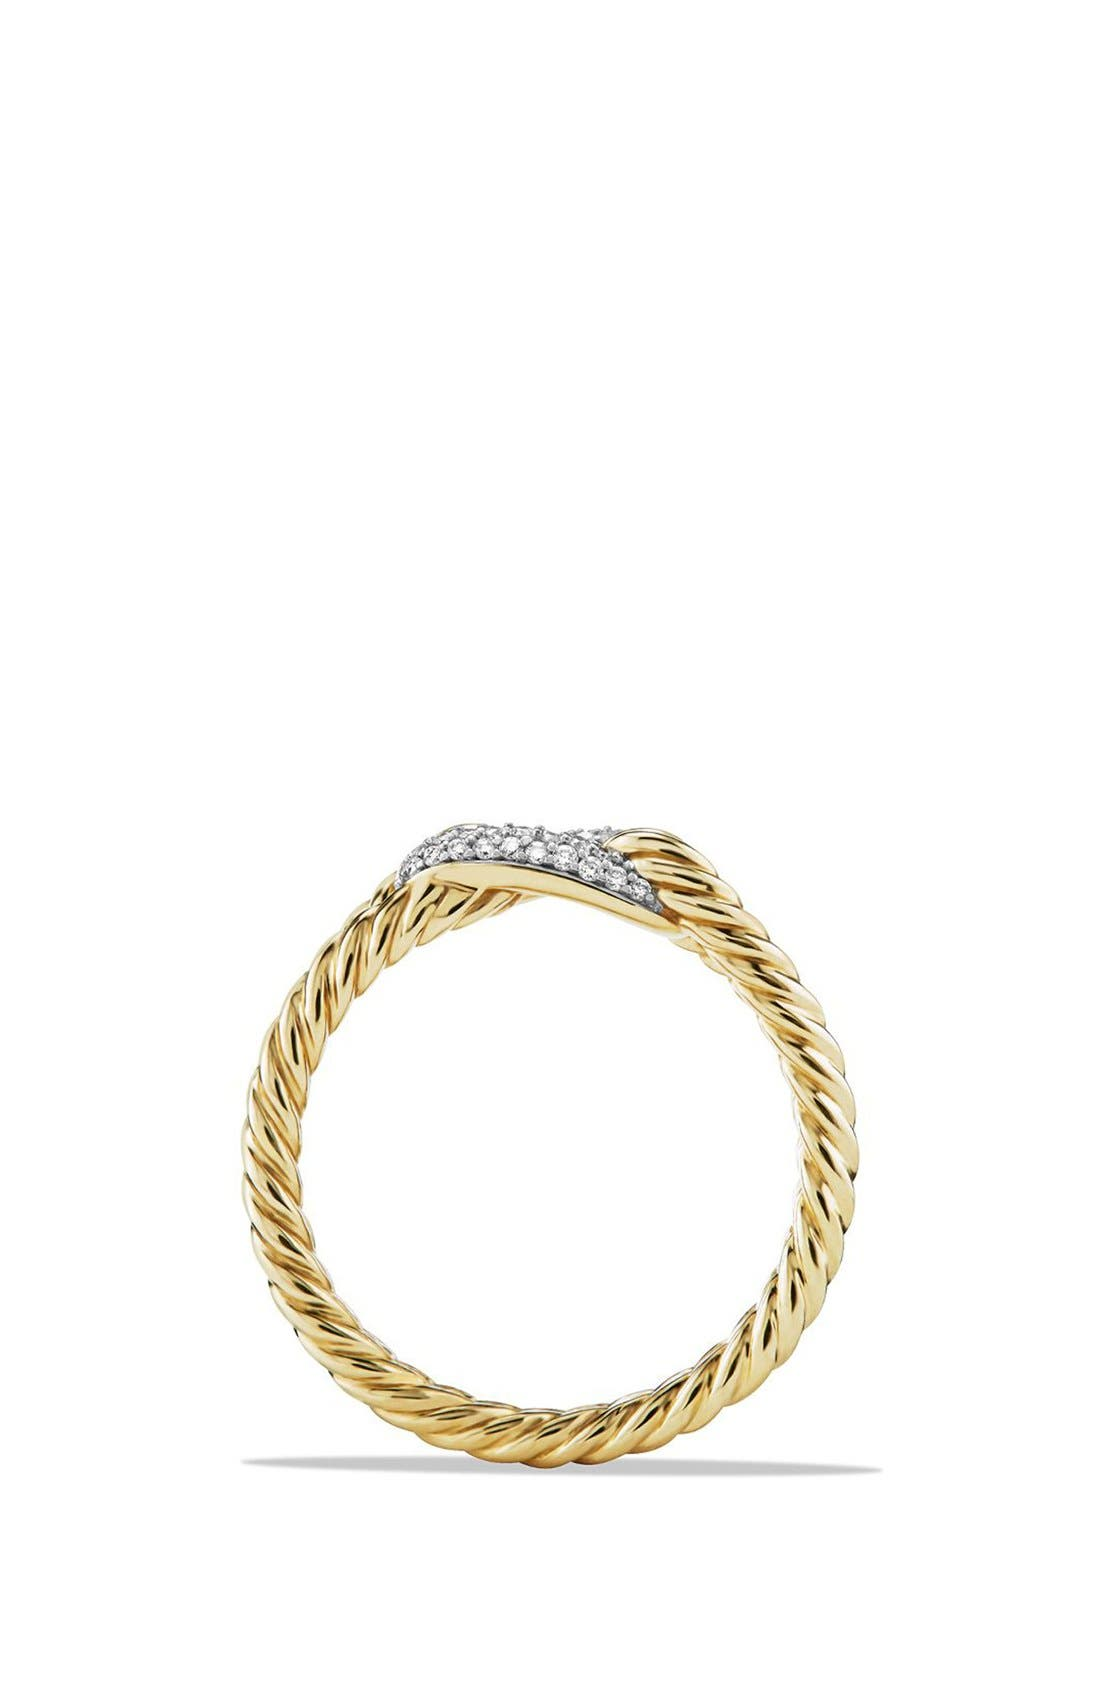 'Petite Pavé' Loop Ring with Diamonds in 18K Gold,                             Alternate thumbnail 2, color,                             GOLD